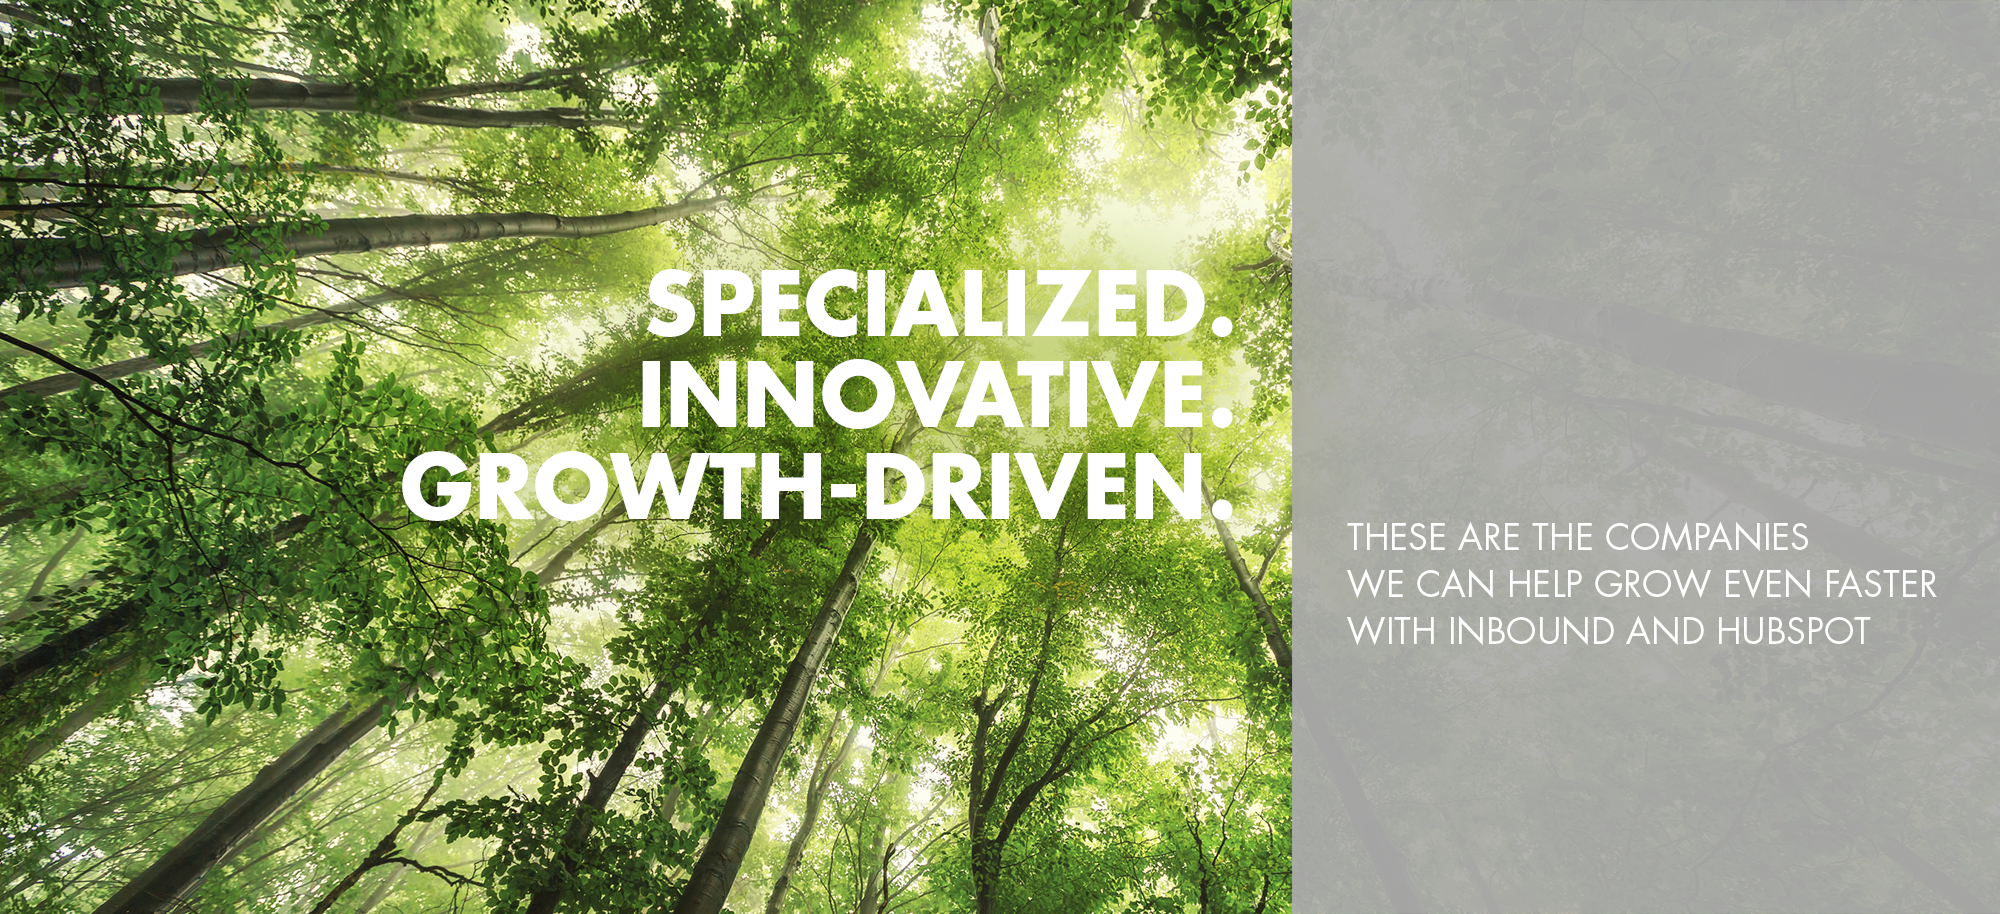 specialized innovative growth-driven